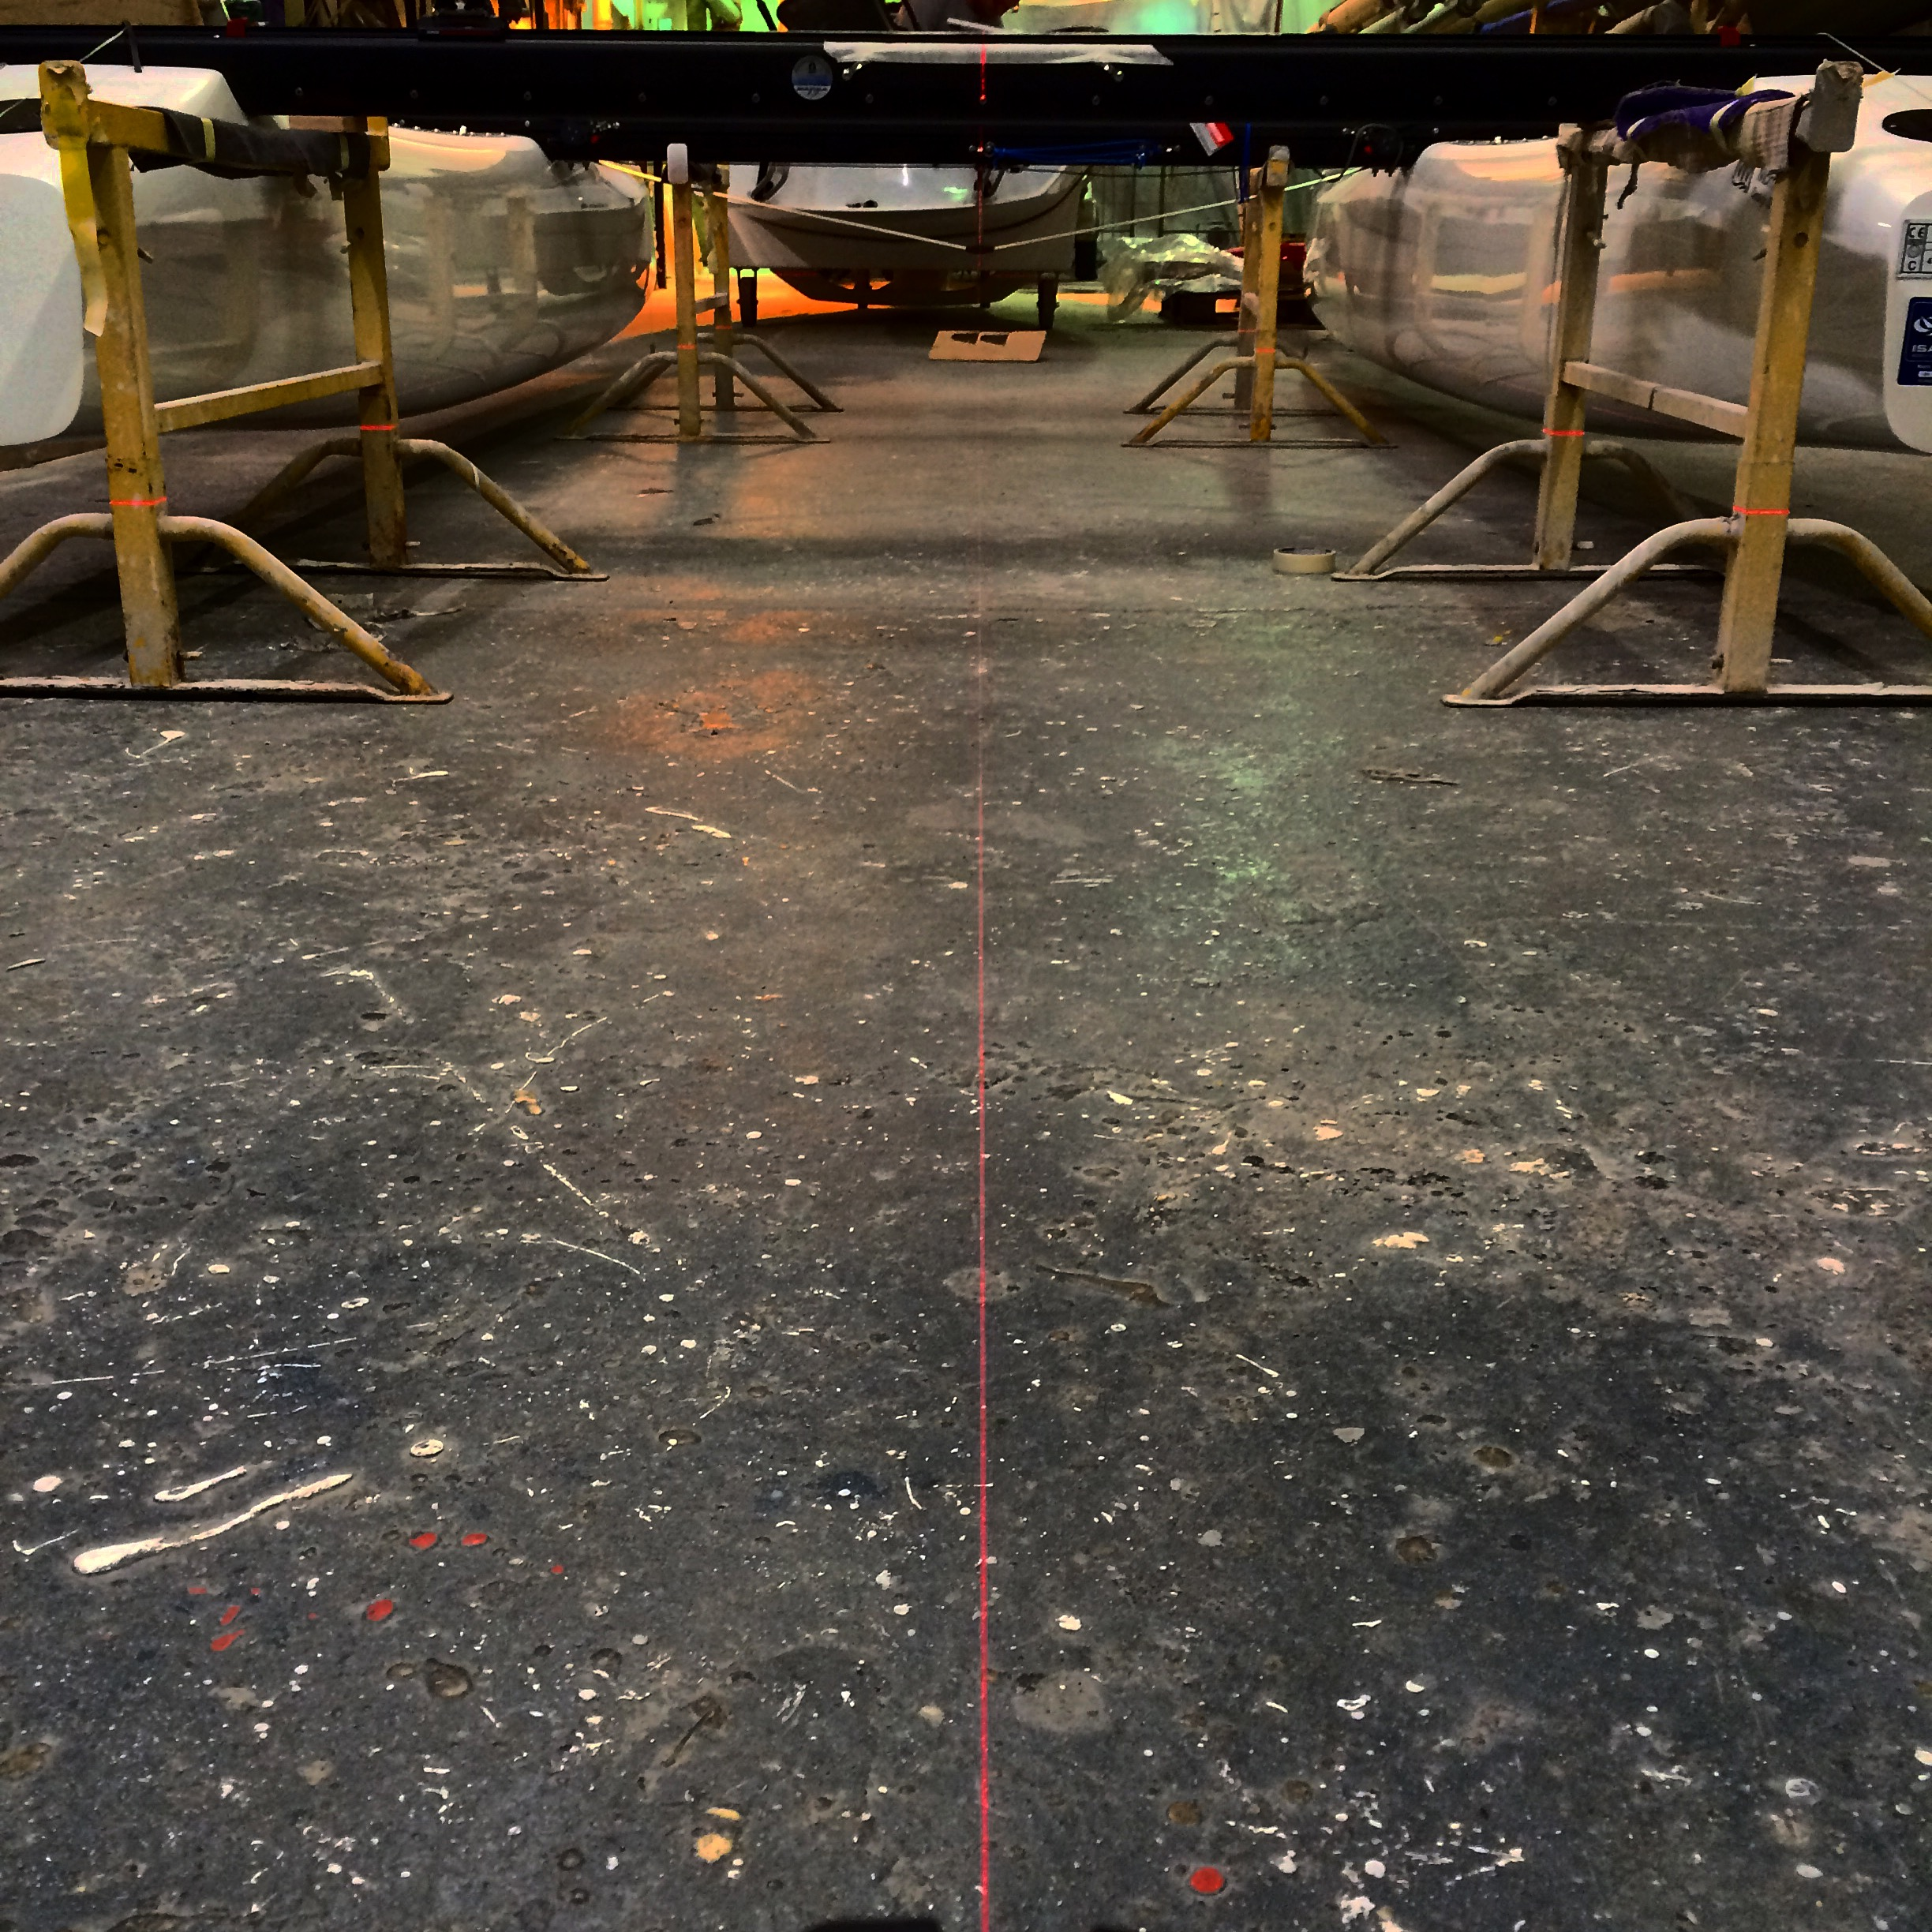 Using lasers to align the new boat